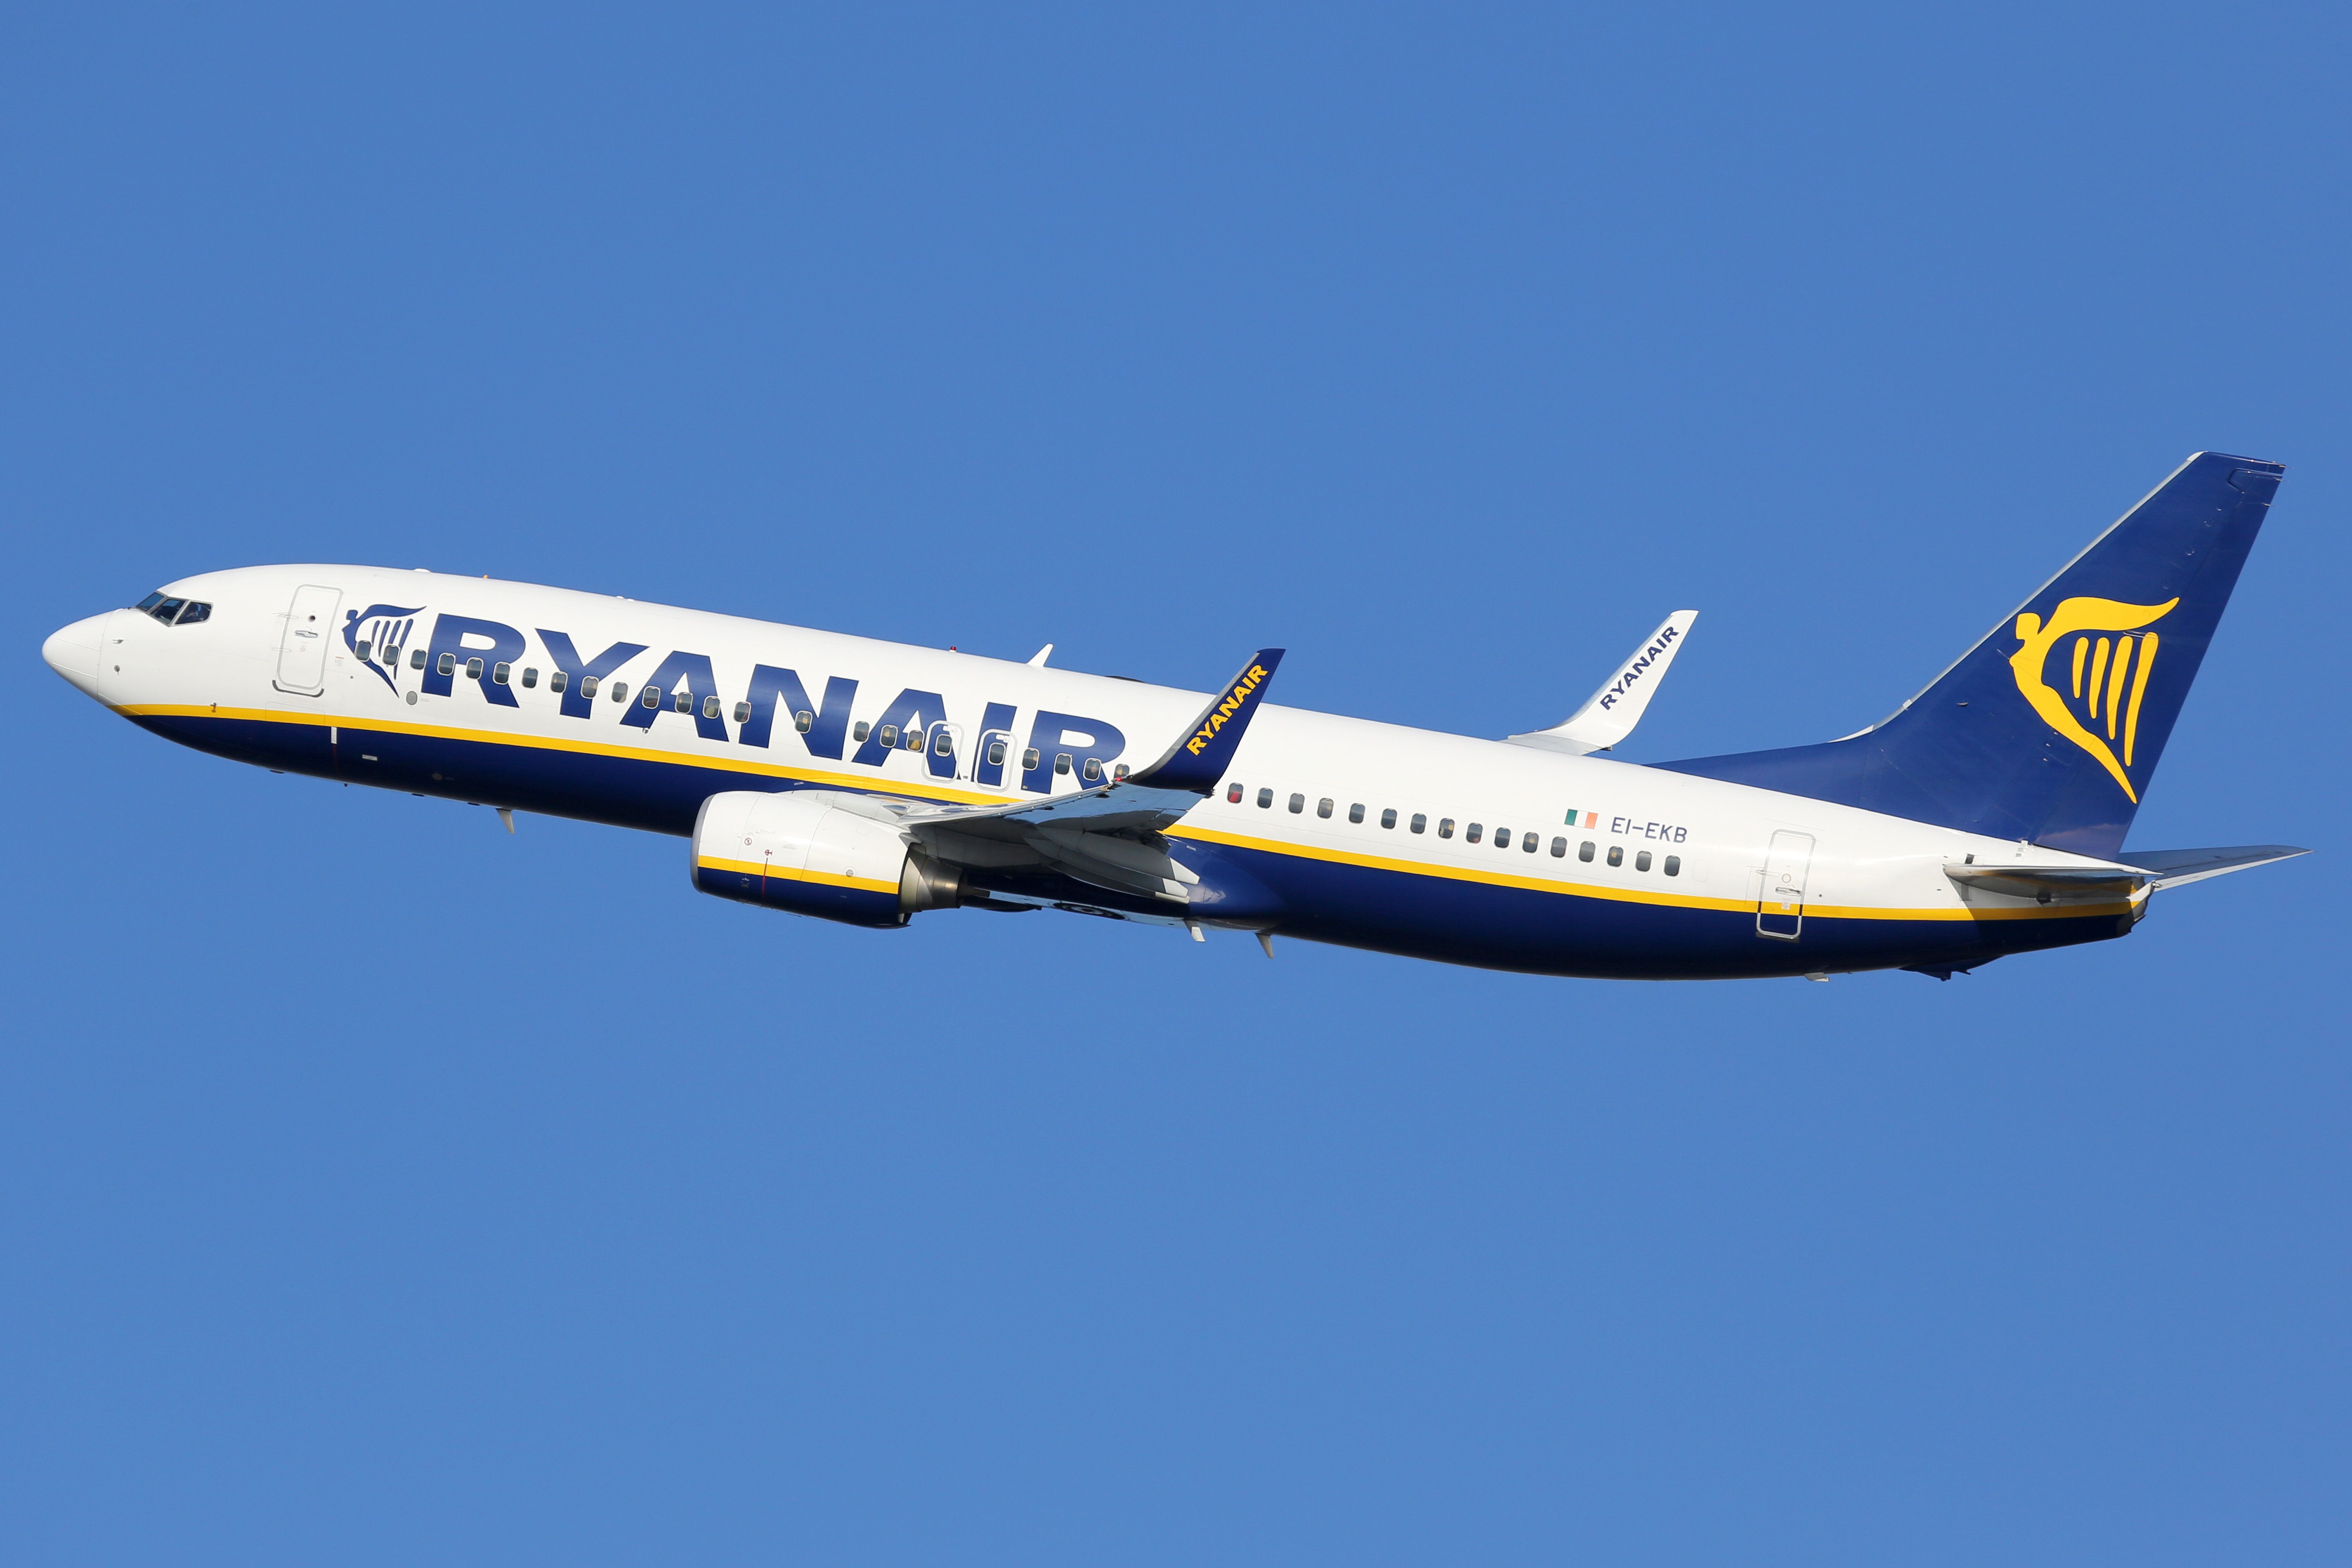 Here's The Full List Of Flights Ryanair Has Cancelled Over The Next 6